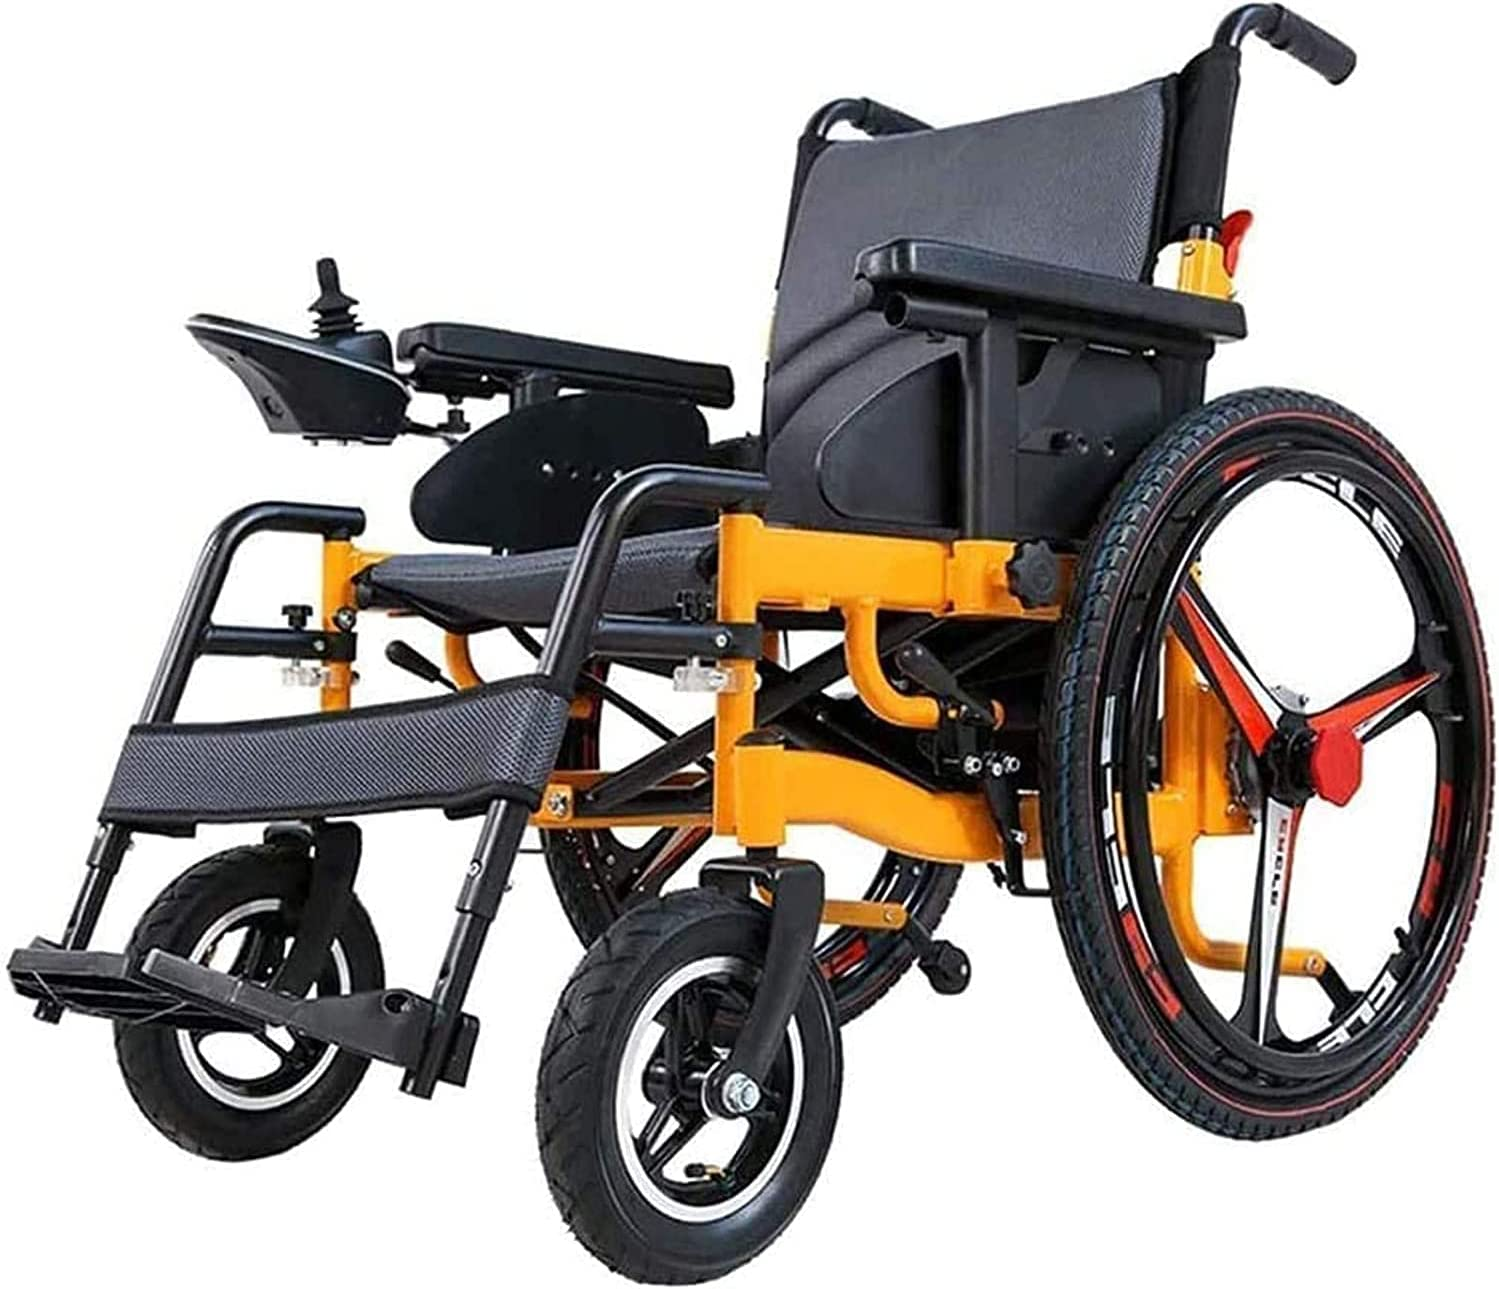 Electric Wheelchair Portable Folding Or Manual Drive Wh Bombing free shipping Sale price